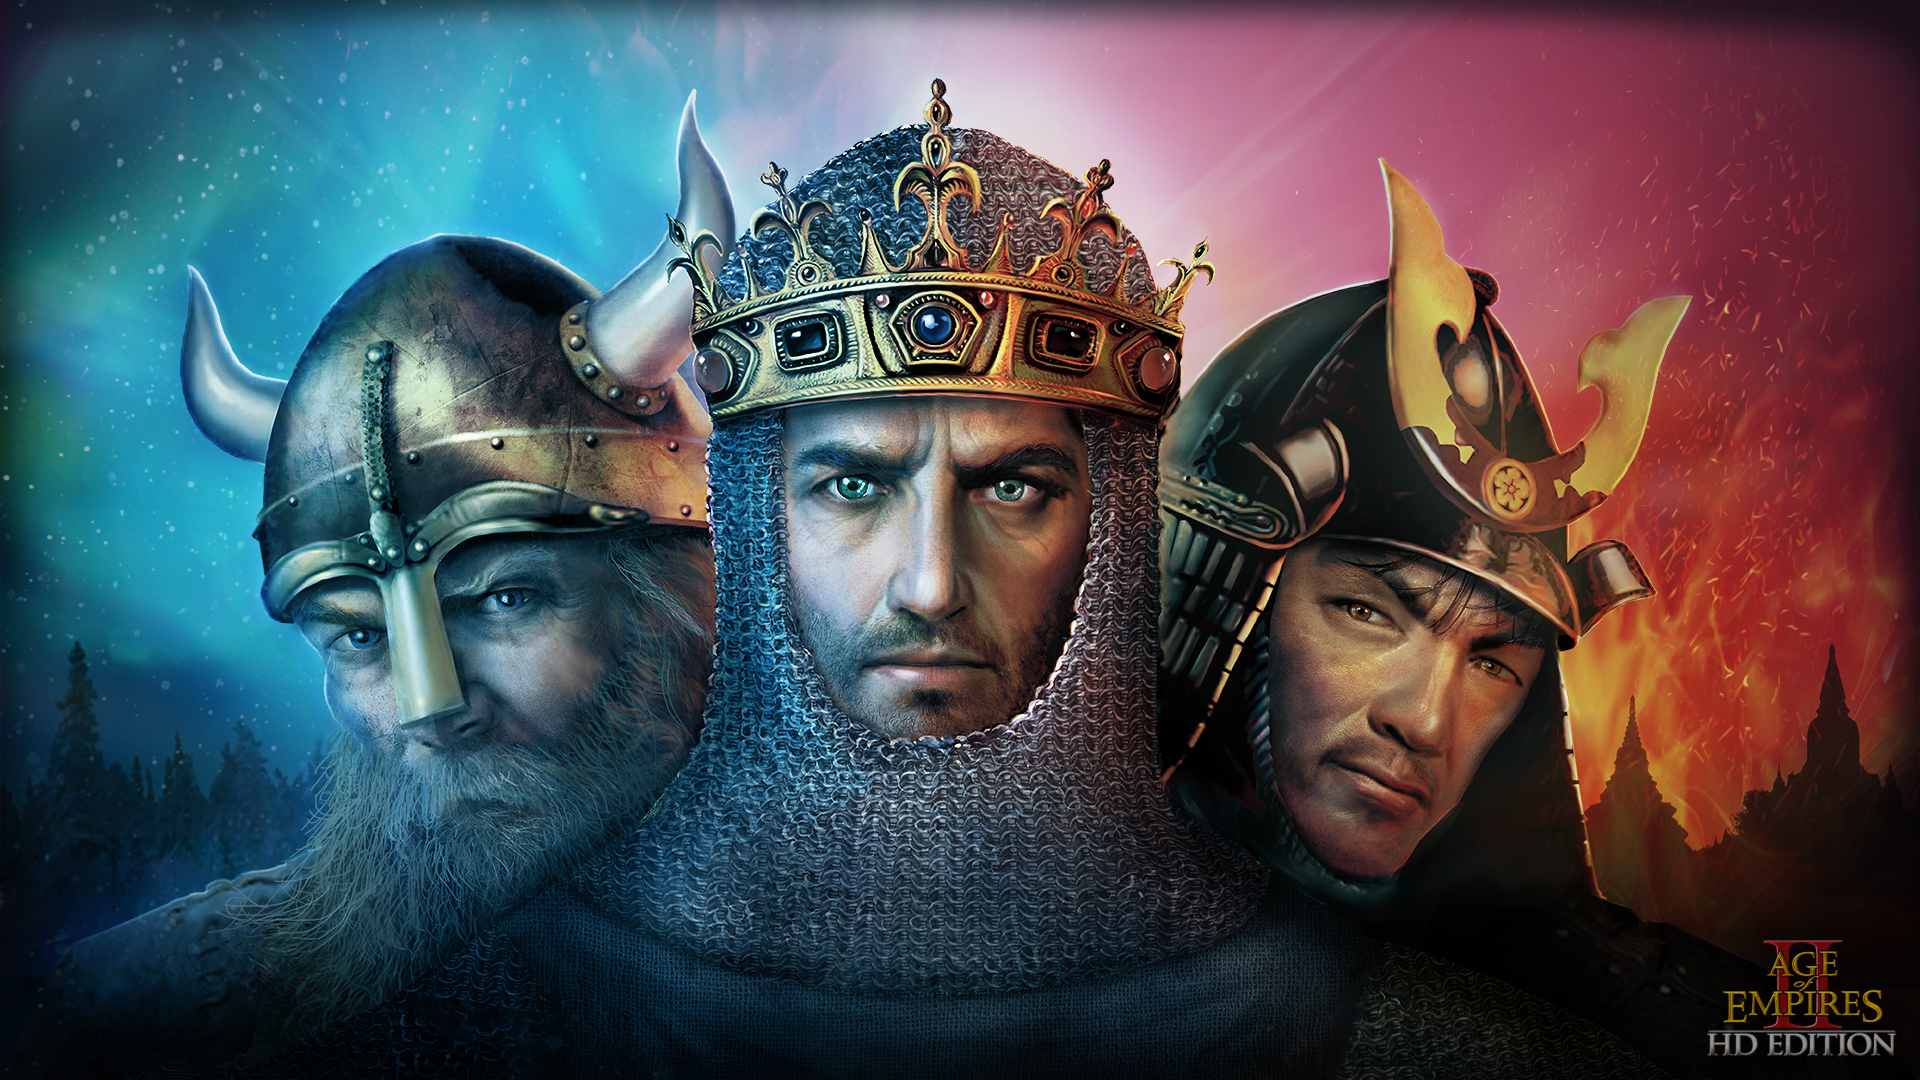 What We Want See From Age Of Empires IV